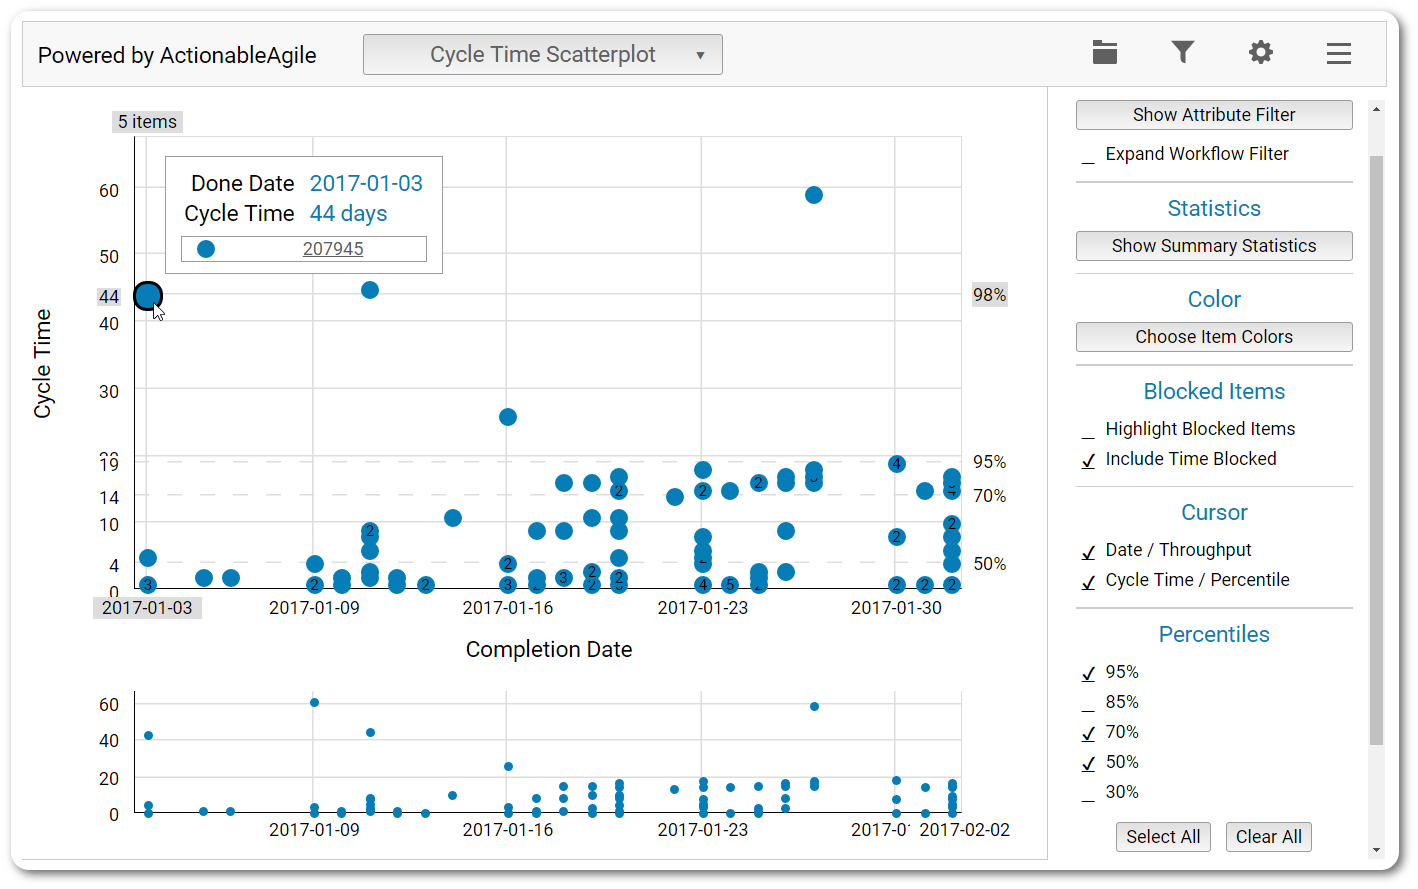 Cycle Time Scatterplot chart